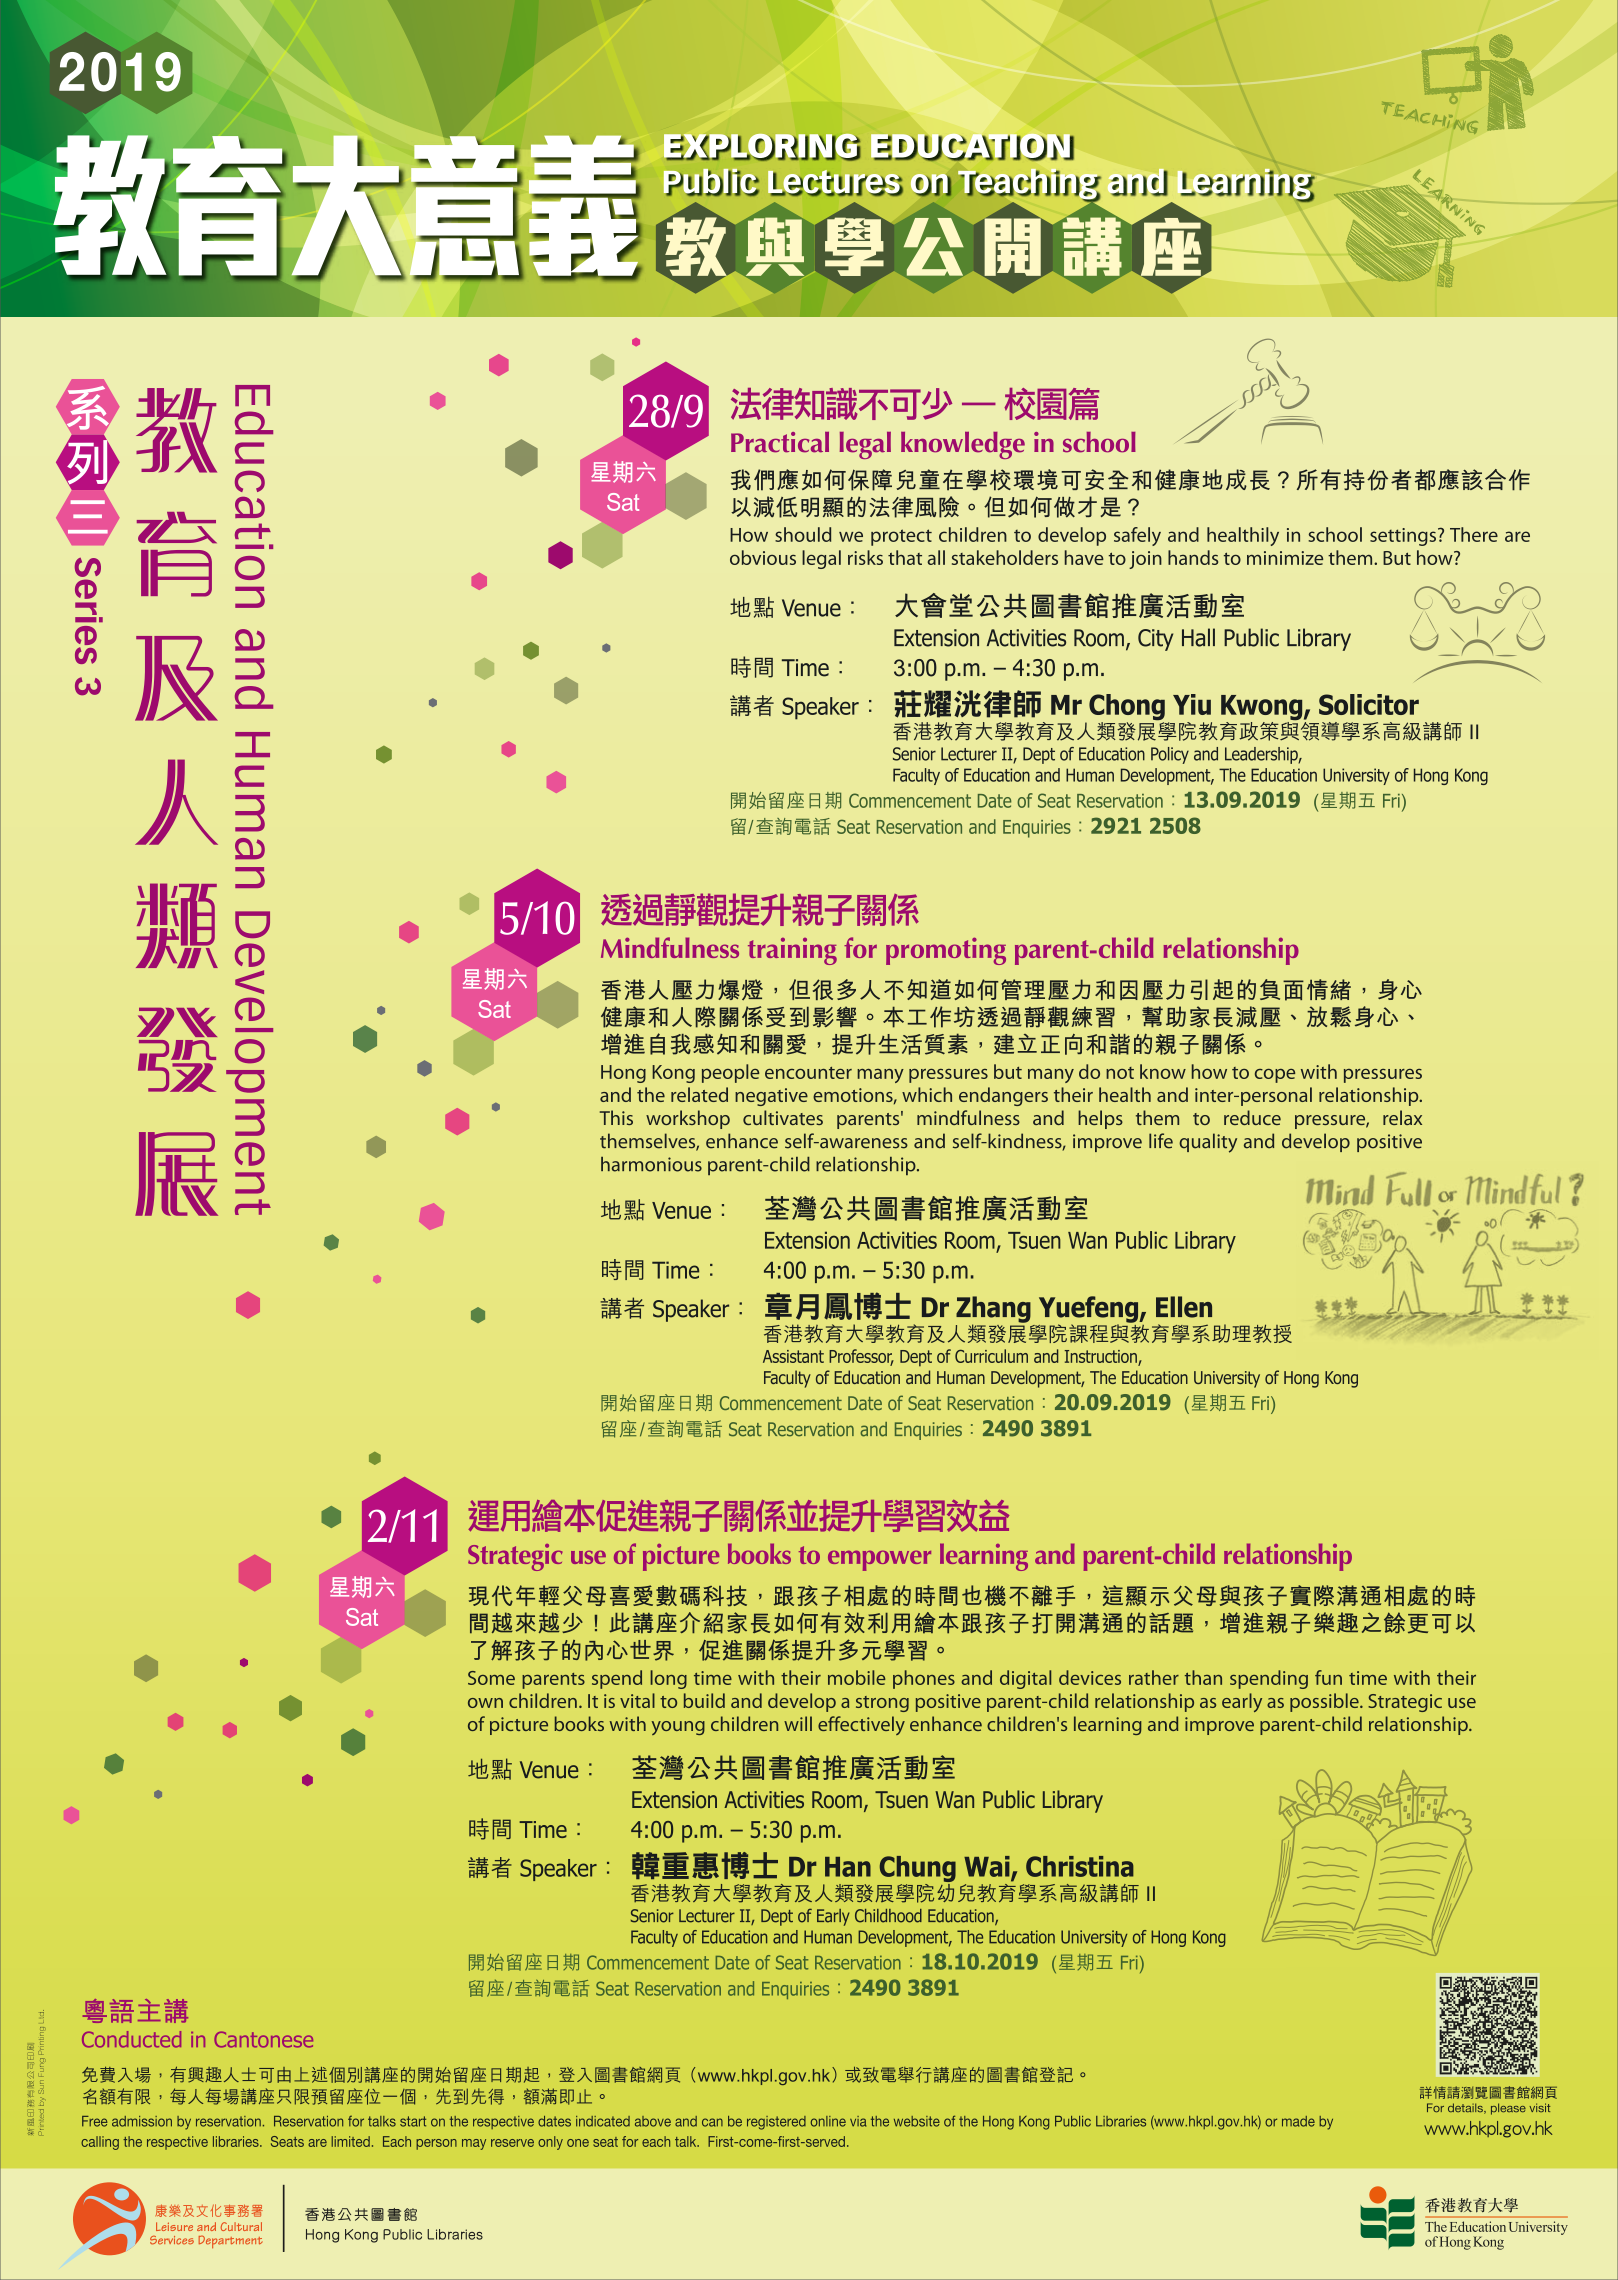 Exploring Education, Public Lectures, Teaching and Learning, Practical legal knowledge in school, EdUHK